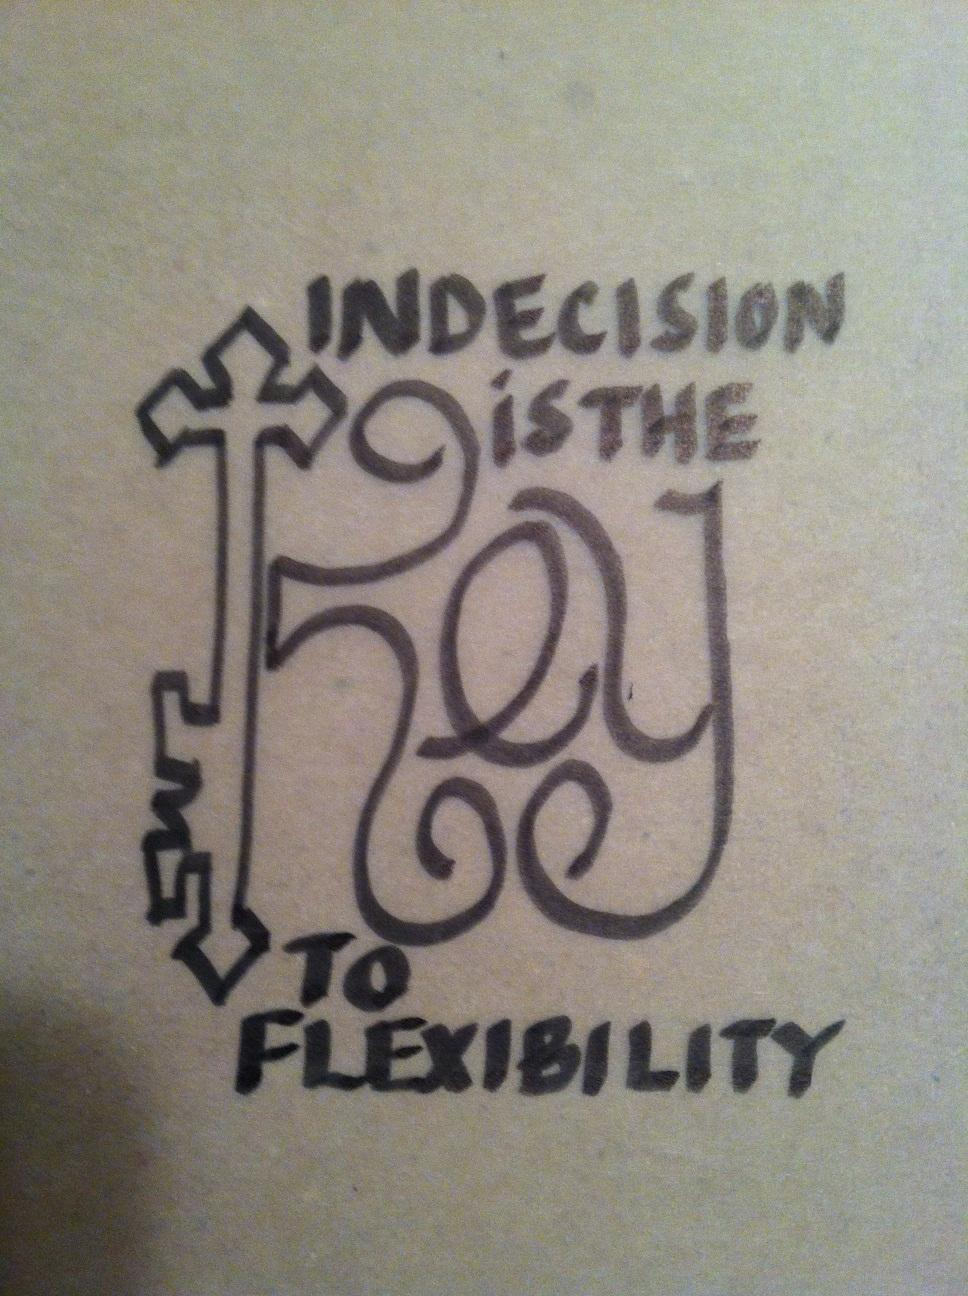 INDECISION is the KEY - image 1 - student project